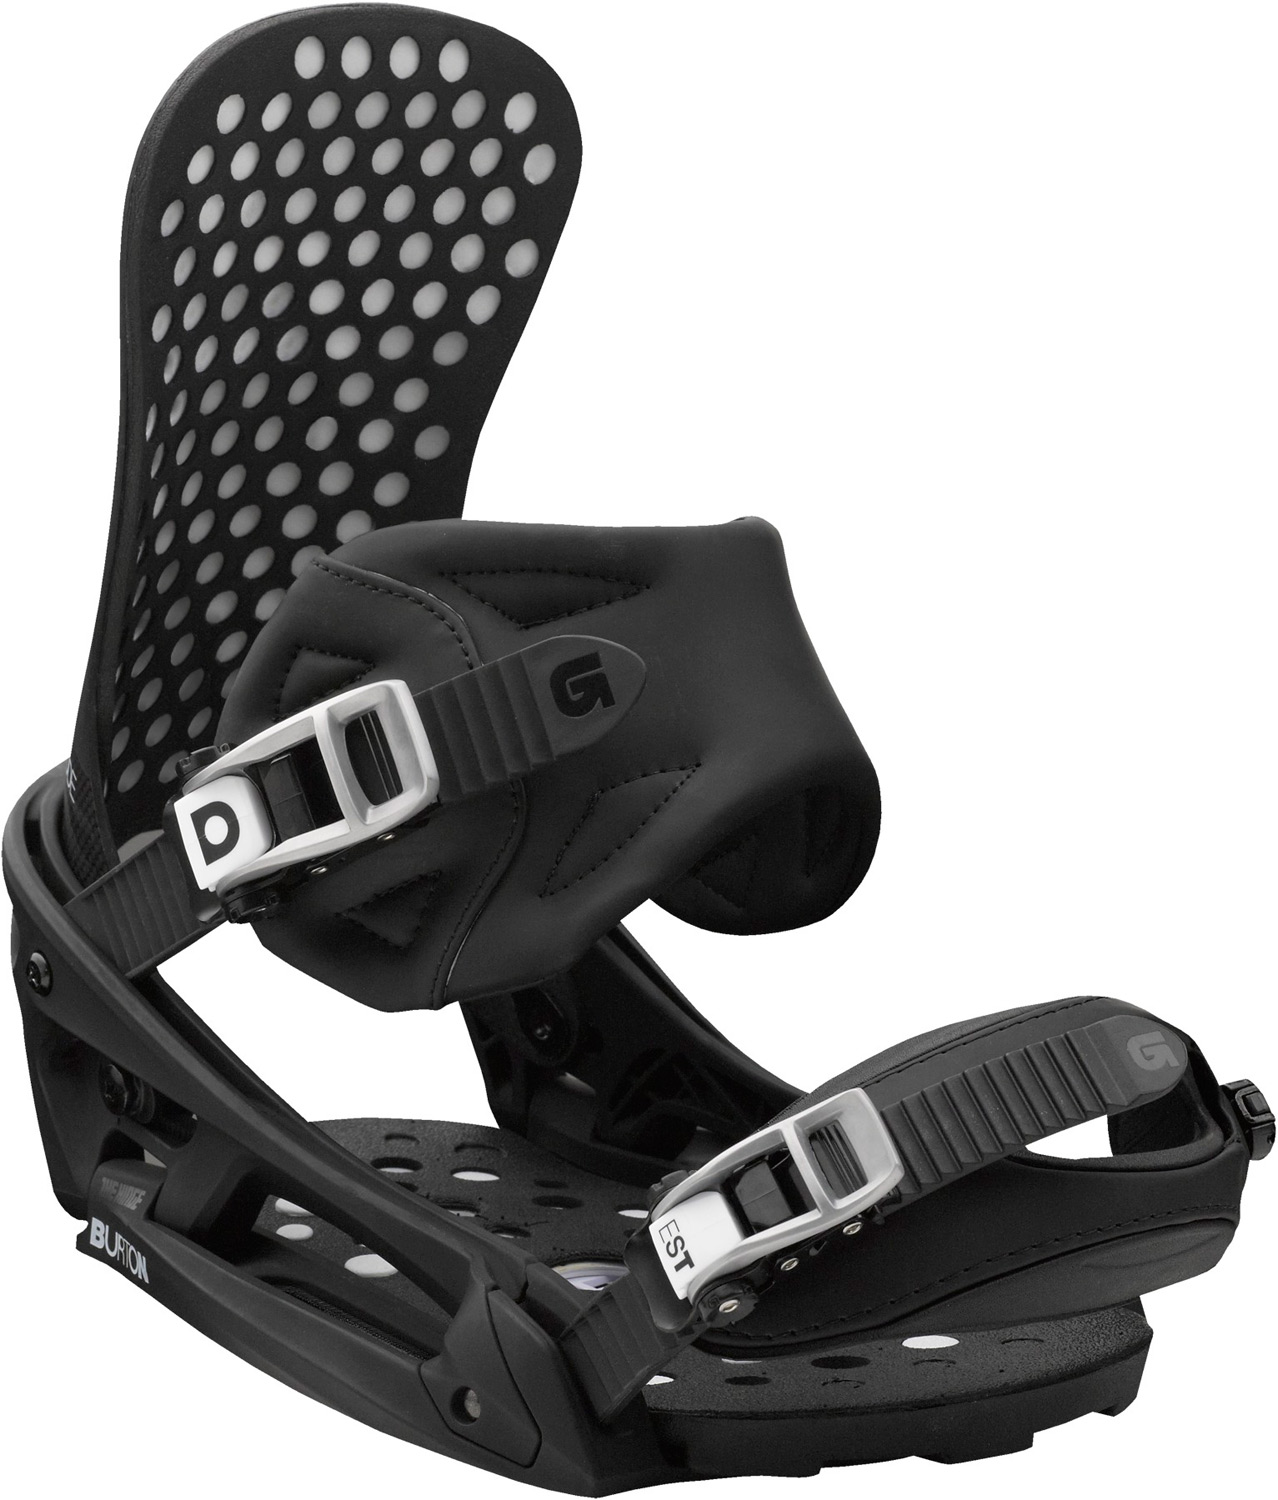 Snowboard Ultimate flex and feel in Burton's lightest weight binding.Key Features of the Burton Diode EST Snowboard Bindings: Response: 8 Baseplate: Dual-Component EST™ Featuring The Hinge with Carbon Fiber/Nylon Composite Spar and Carbon Fiber/Nylon Composite Lower Hi-Back: Ultra-Lightweight Single- Component Carbon Composite Hi-Back Straps: React Strap and Lightweight Gettagrip Capstrap™ Buckles: Dual-Component Smooth Glide™ Buckles Cushioning: Removable ShredBED™ 3.0 Cushioning System Rides Exclusively with Burton Boards Featuring The Channel Features Re-Ground Materials in Baseplate to Reduce Waste - $299.95